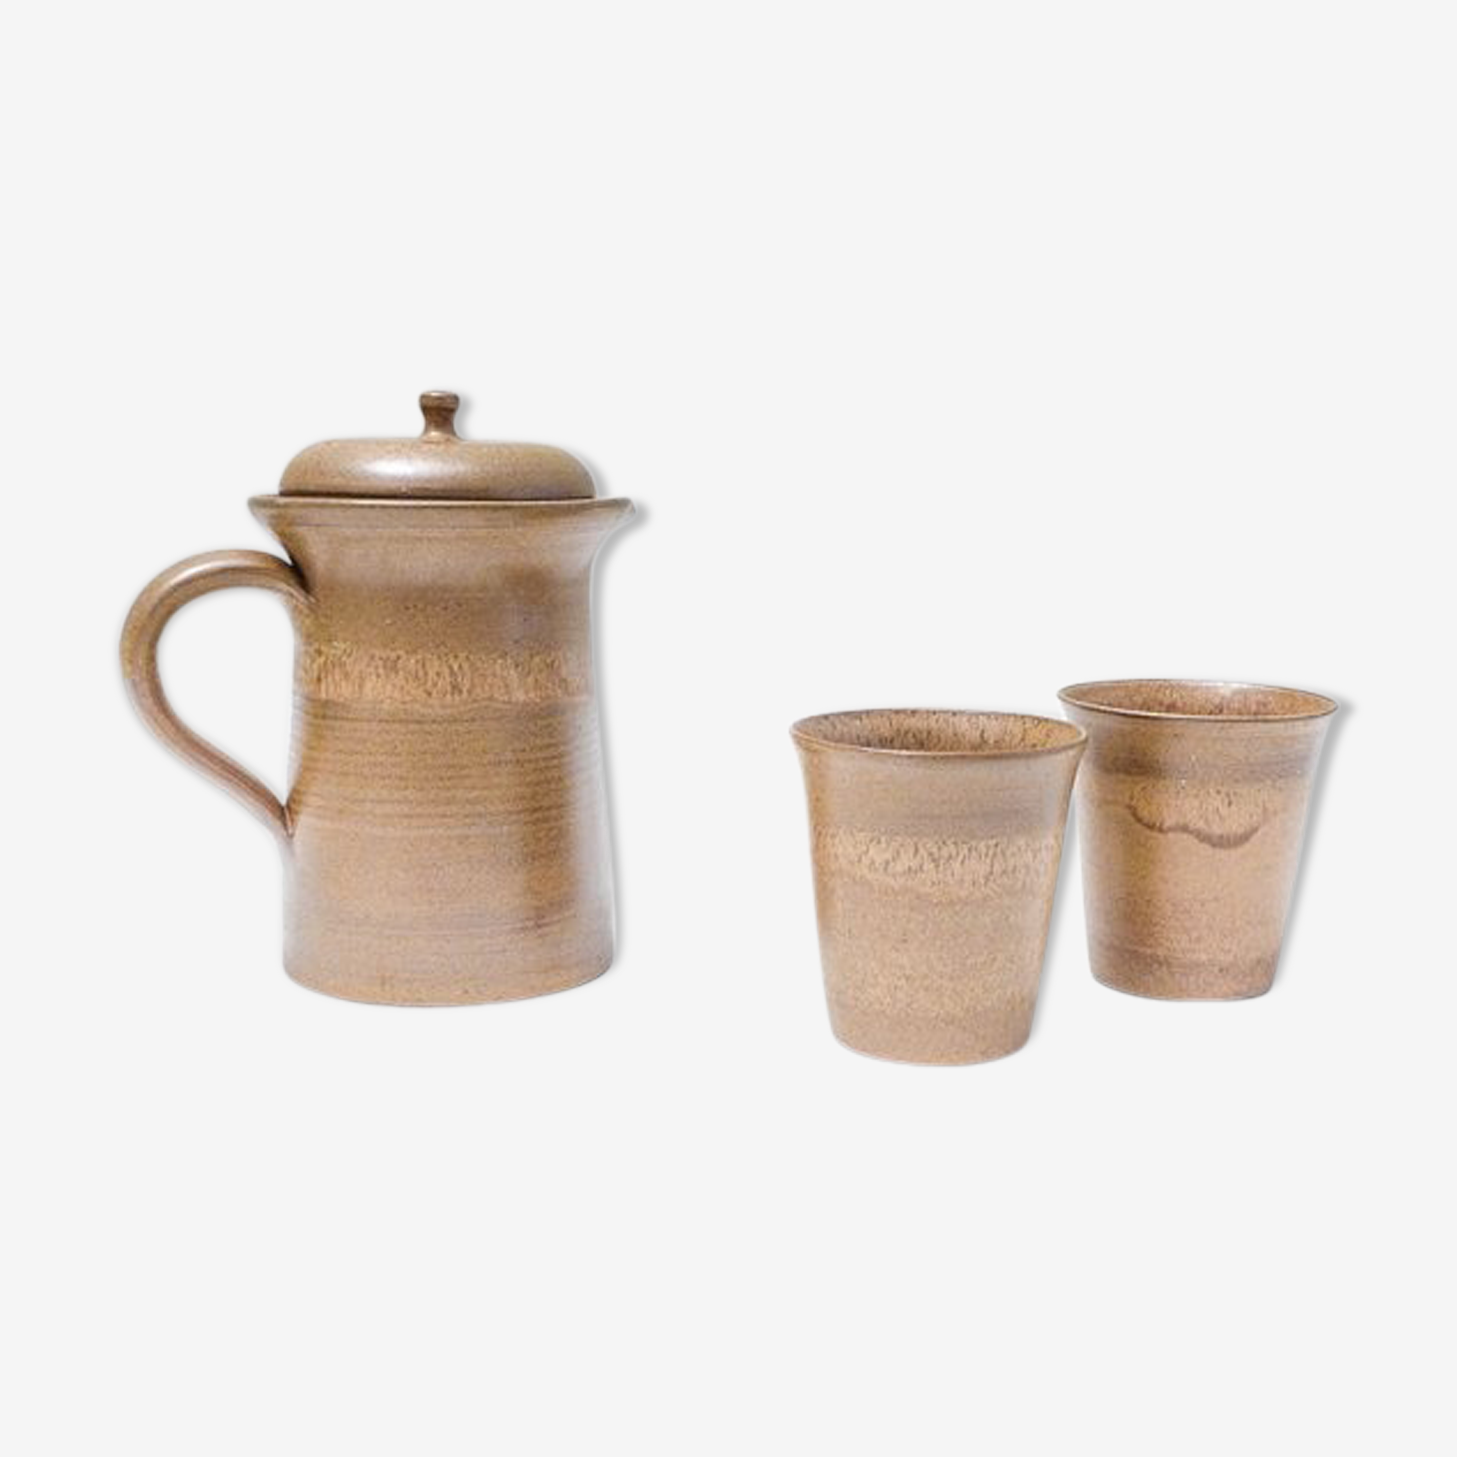 All pot and glasses in sandstone